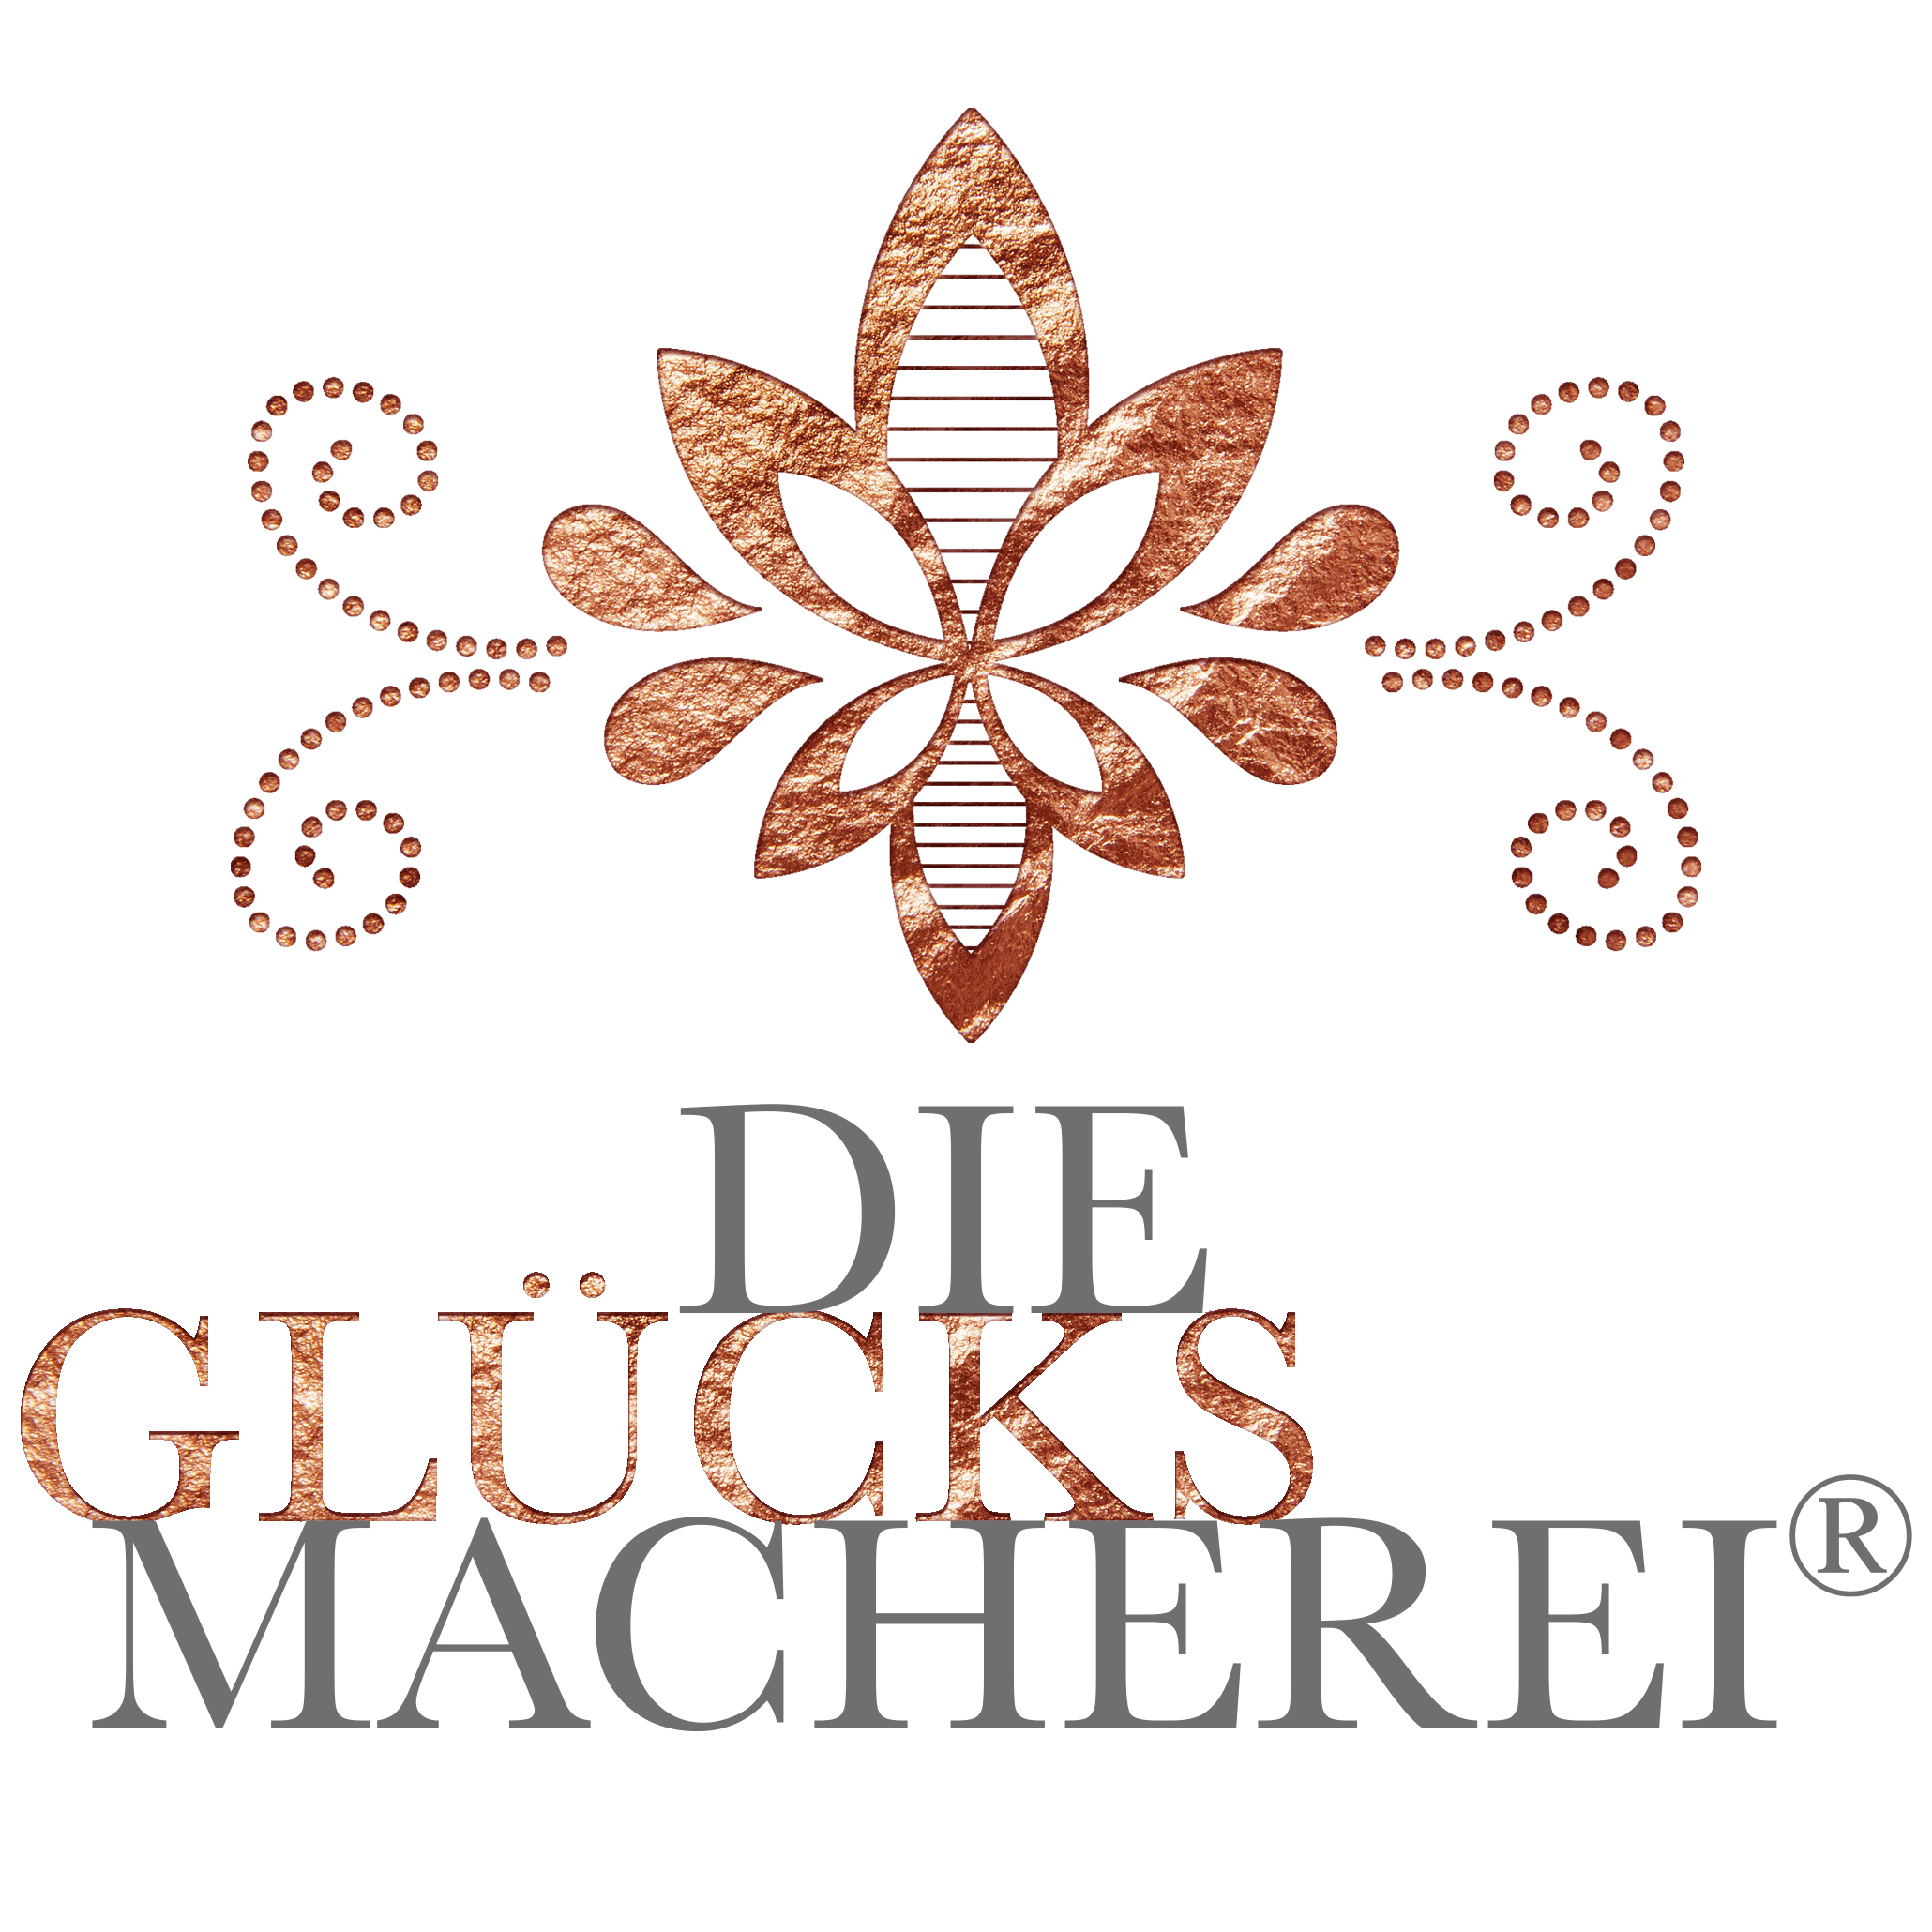 addesign, anna delia d'Errico, let love guide your way, Gluecksmacherei, die gluecksmacherei, die glücksmacherei, logodesign